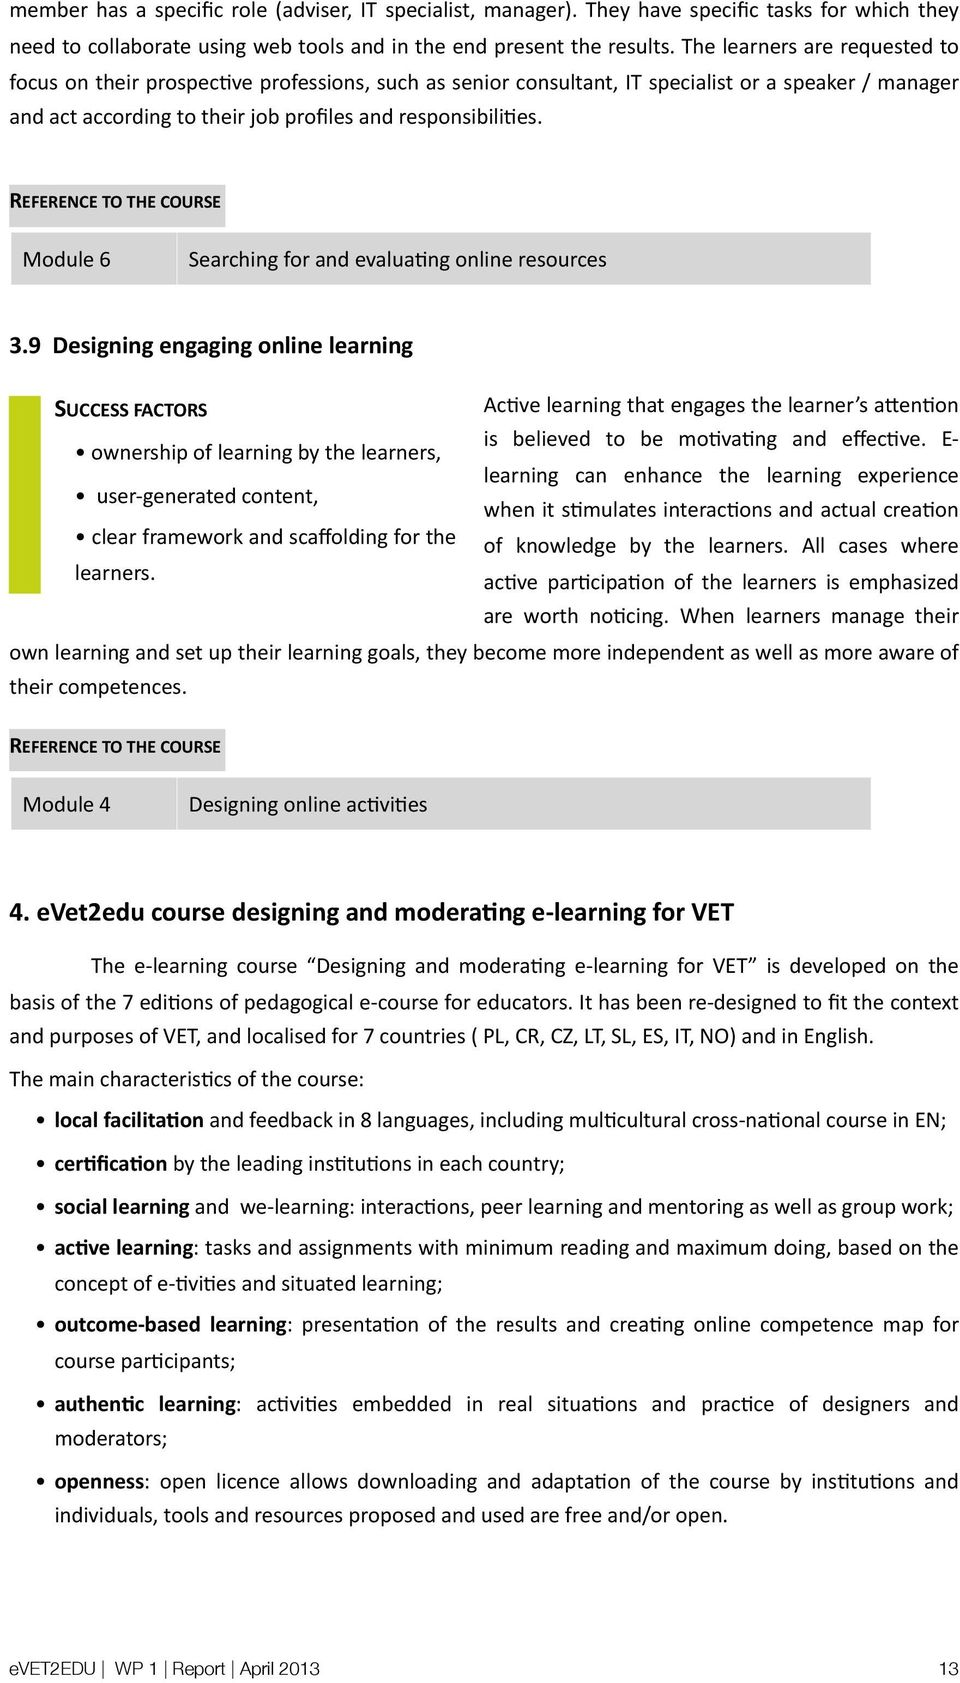 Module 6 Searching for and evalua/ng online resources 3.9 Designing engaging online learning Ac/ve learning that engages the learner s aoen/on is believed to be mo/va/ng and effec/ve.